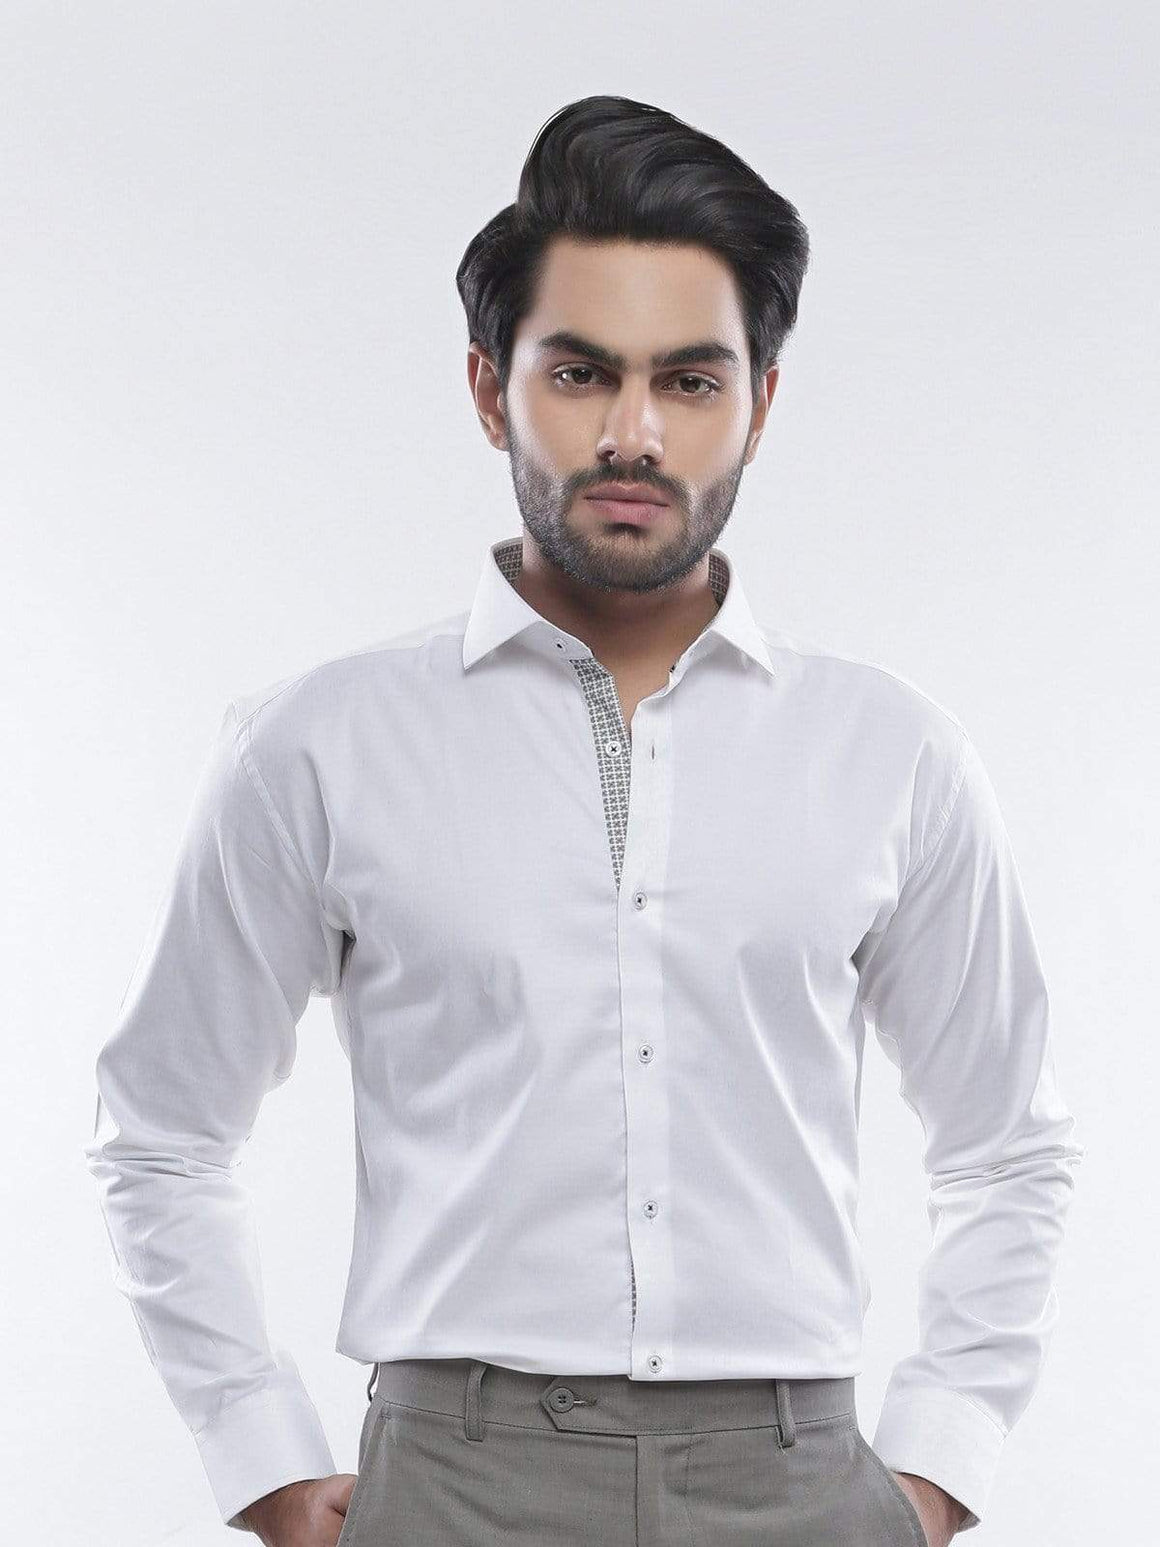 The Cress - White Semi-Formal Designer Shirt